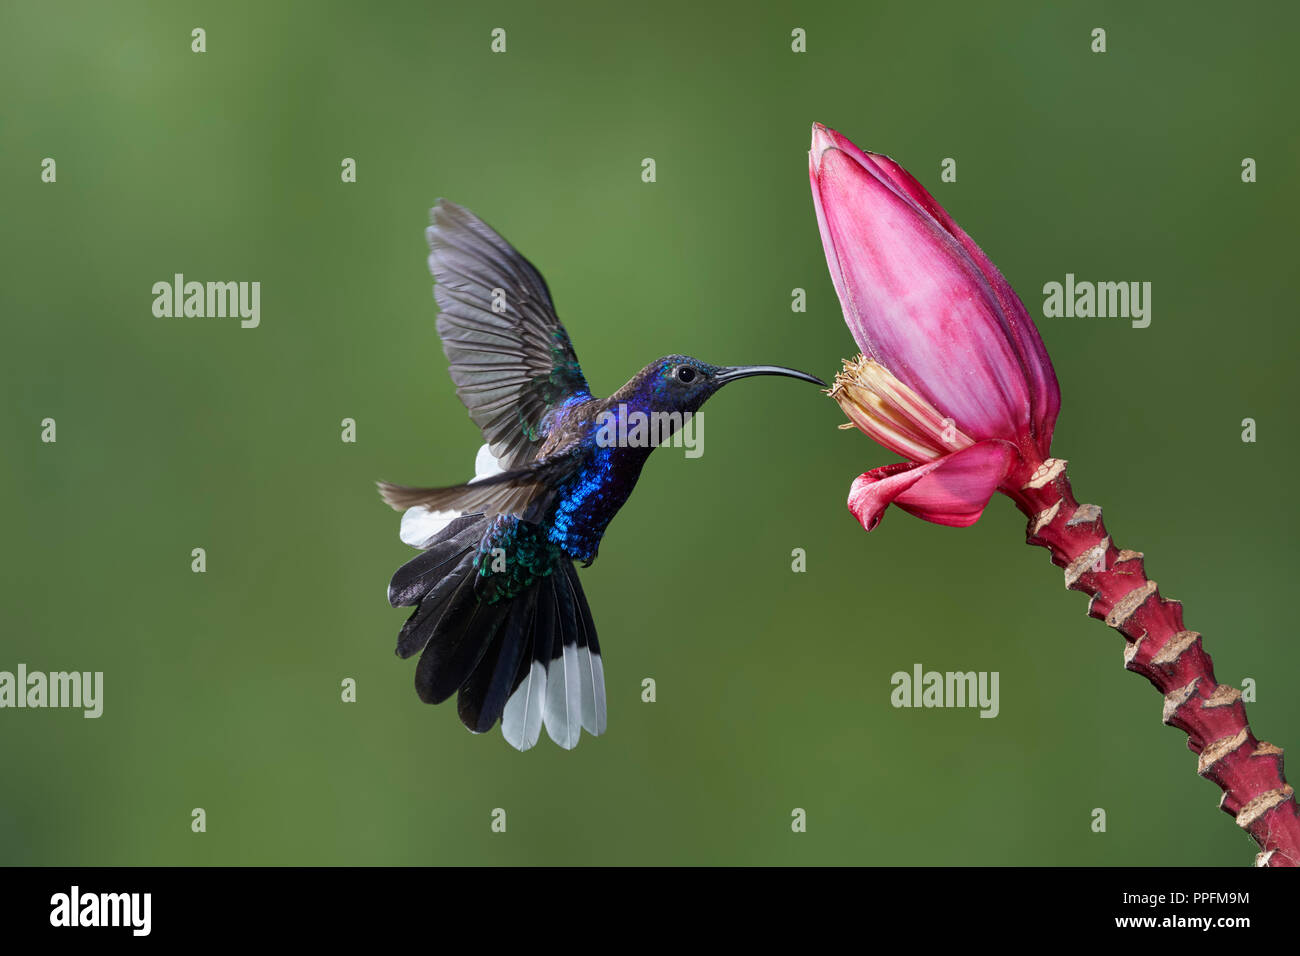 Violet Sabrewing (Campylopterus hemileucurus), male, approaching a Bananas flower (Musa sp), Bosque del Paz, Costa Rica Stock Photo